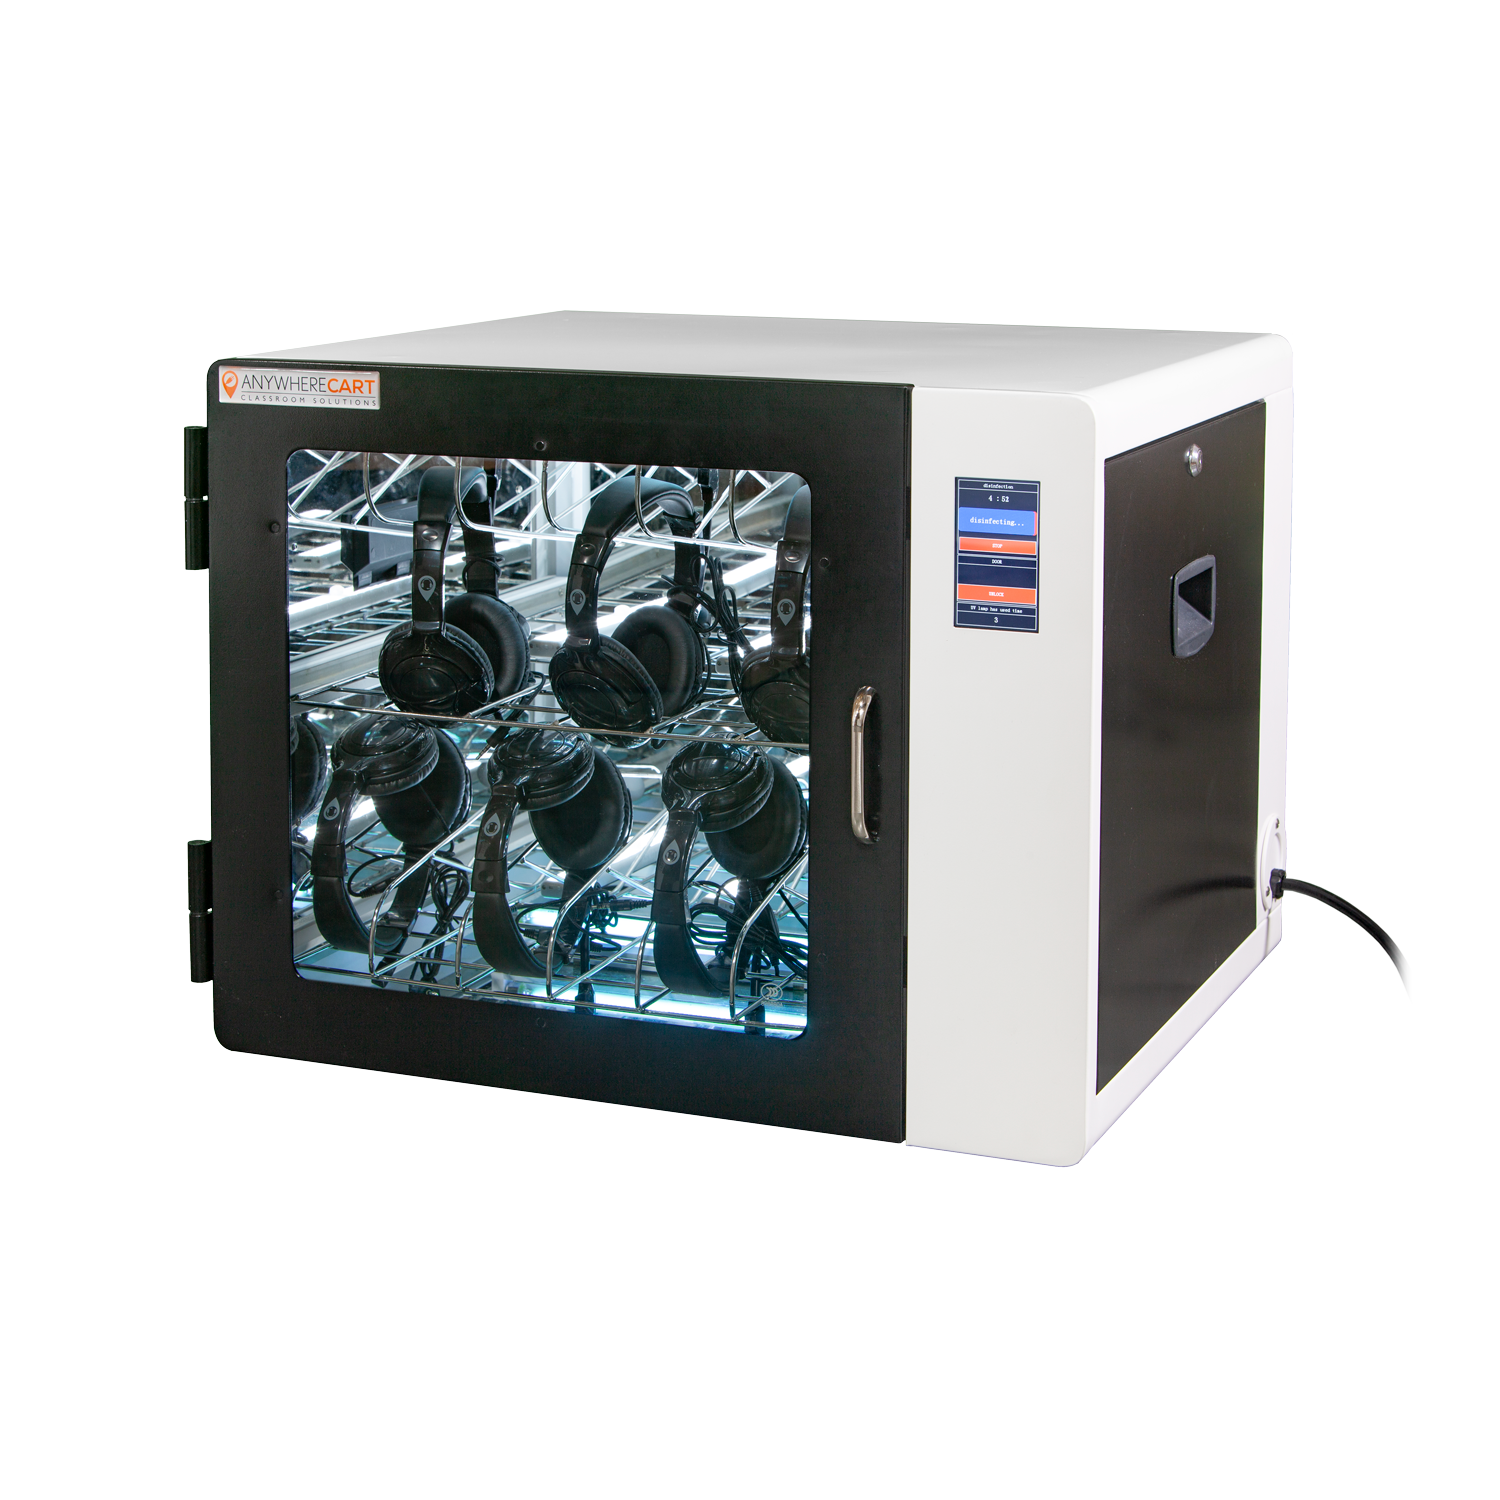 Anywhere Cart AC-CLEAN: Configurable UVC Sanitizing Cabinet - Closed, headphones image